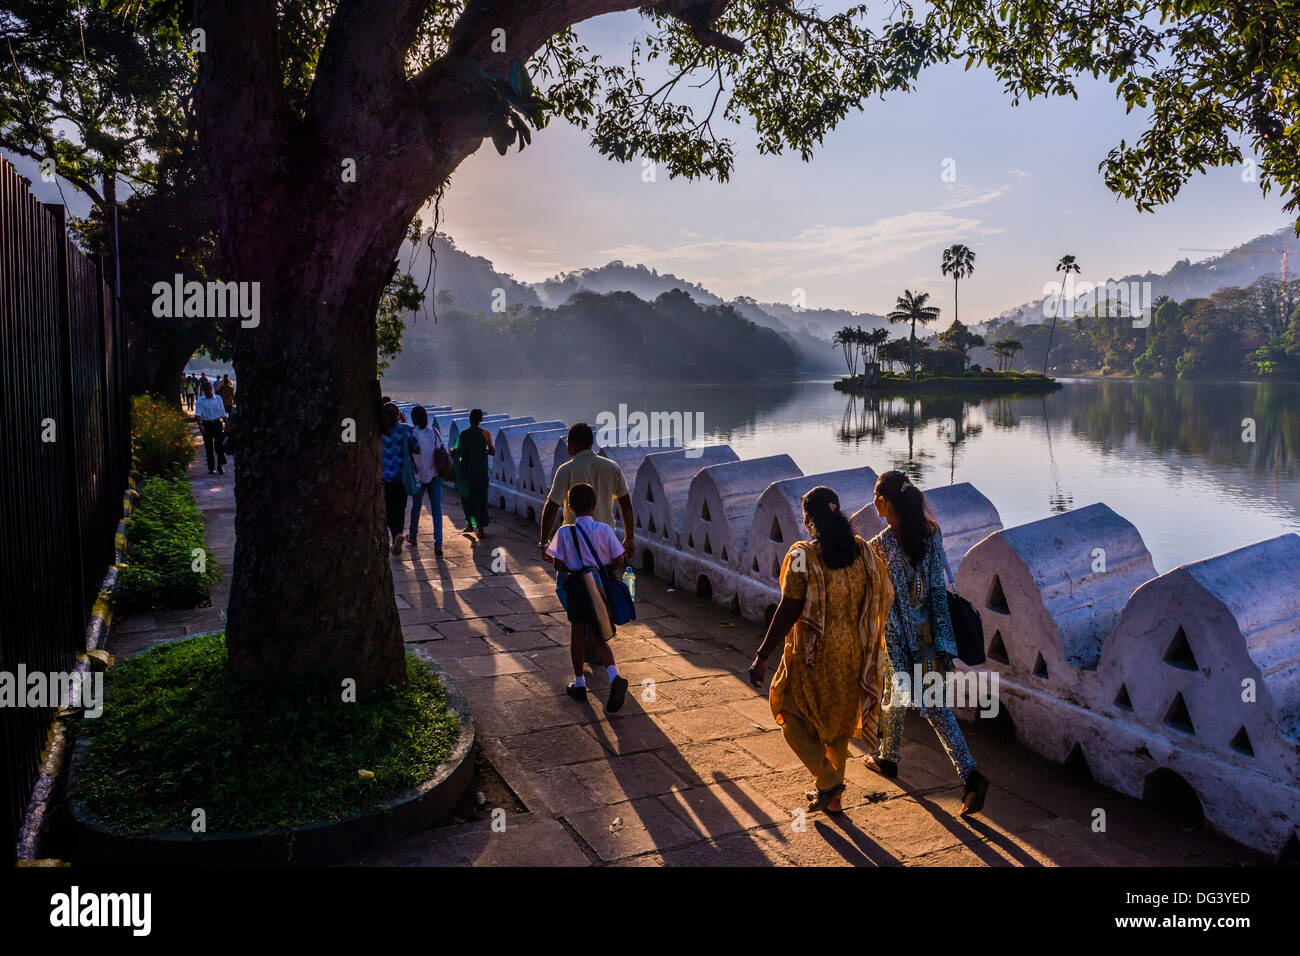 Sri Lankan people walking at Kandy Lake at sunrise, Kandy, Central Province, Sri Lanka, Asia - Stock Image